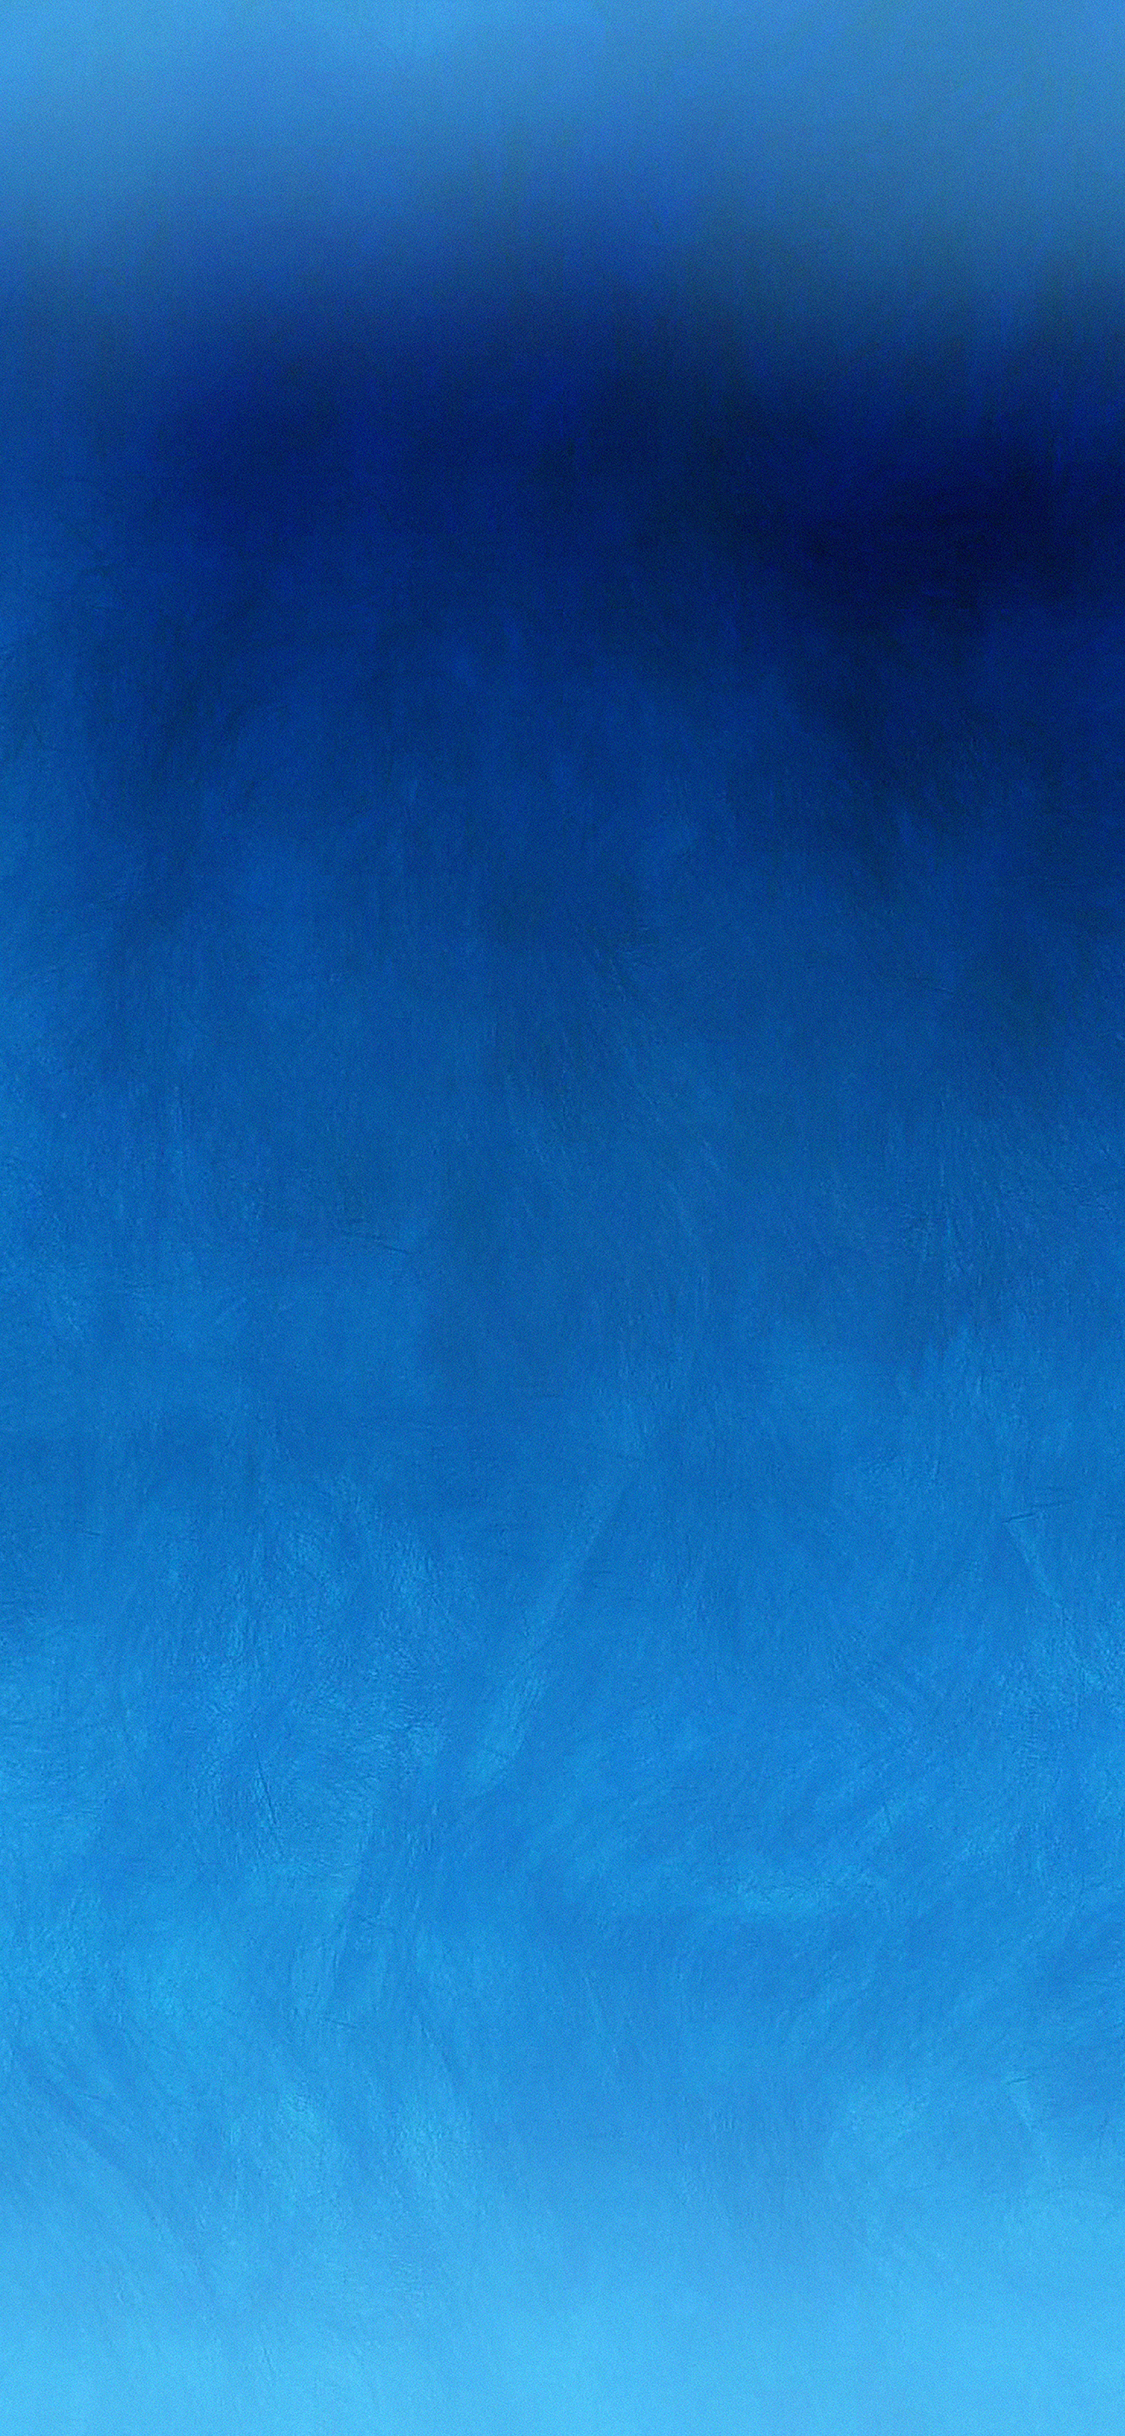 iPhoneXpapers.com-Apple-iPhone-wallpaper-vb55-wallpaper-astratto-carta-ocean-blur-pattern